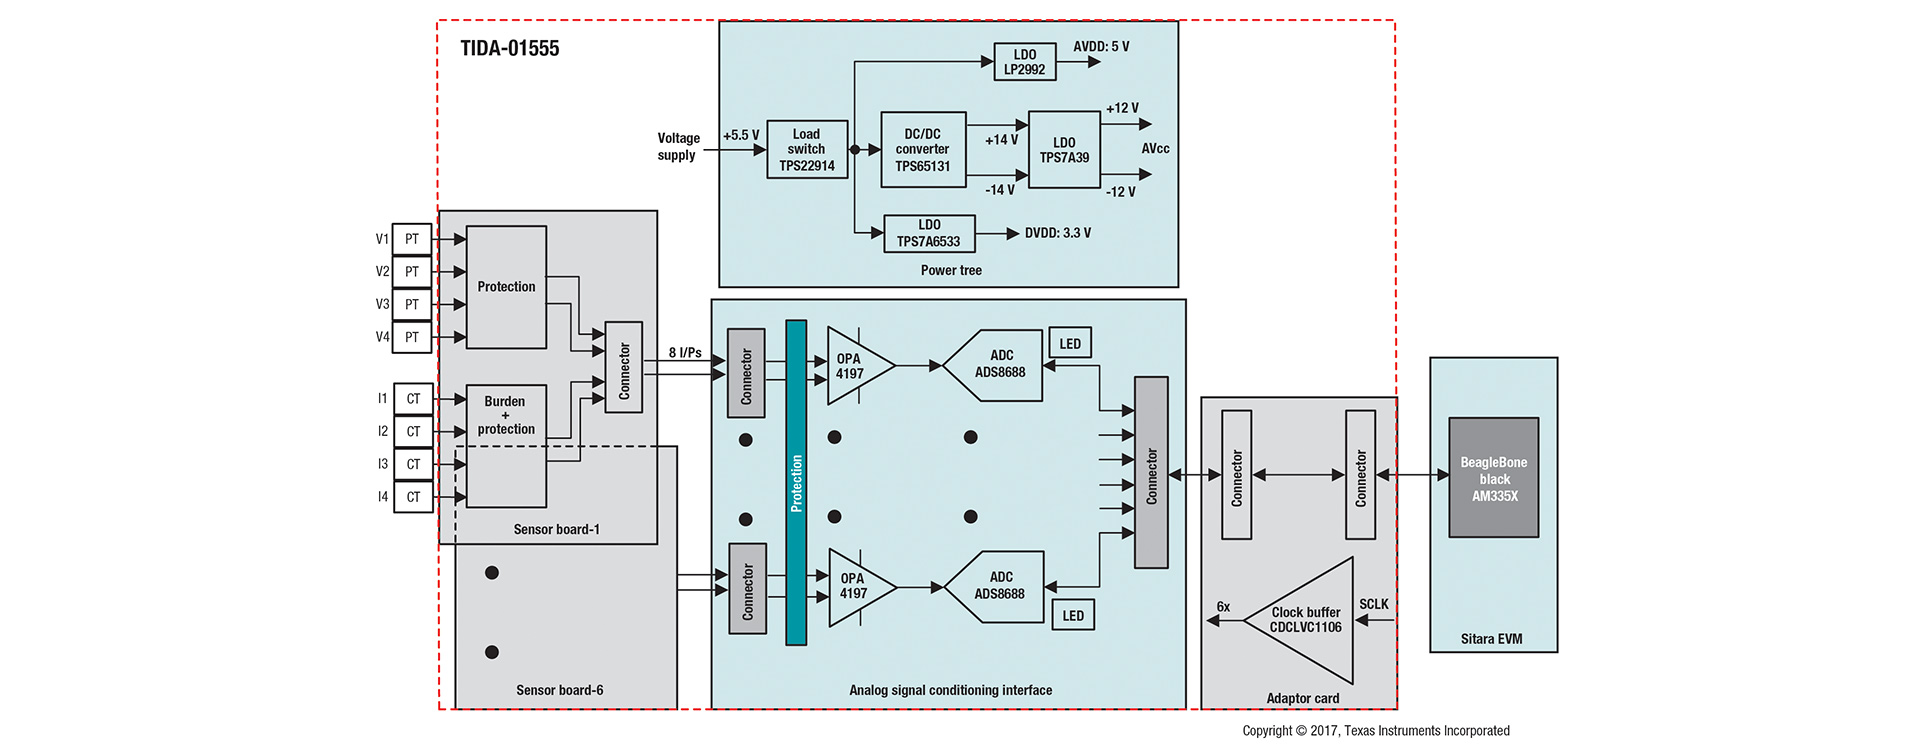 Flexible-interface-reference-design-block-diagram